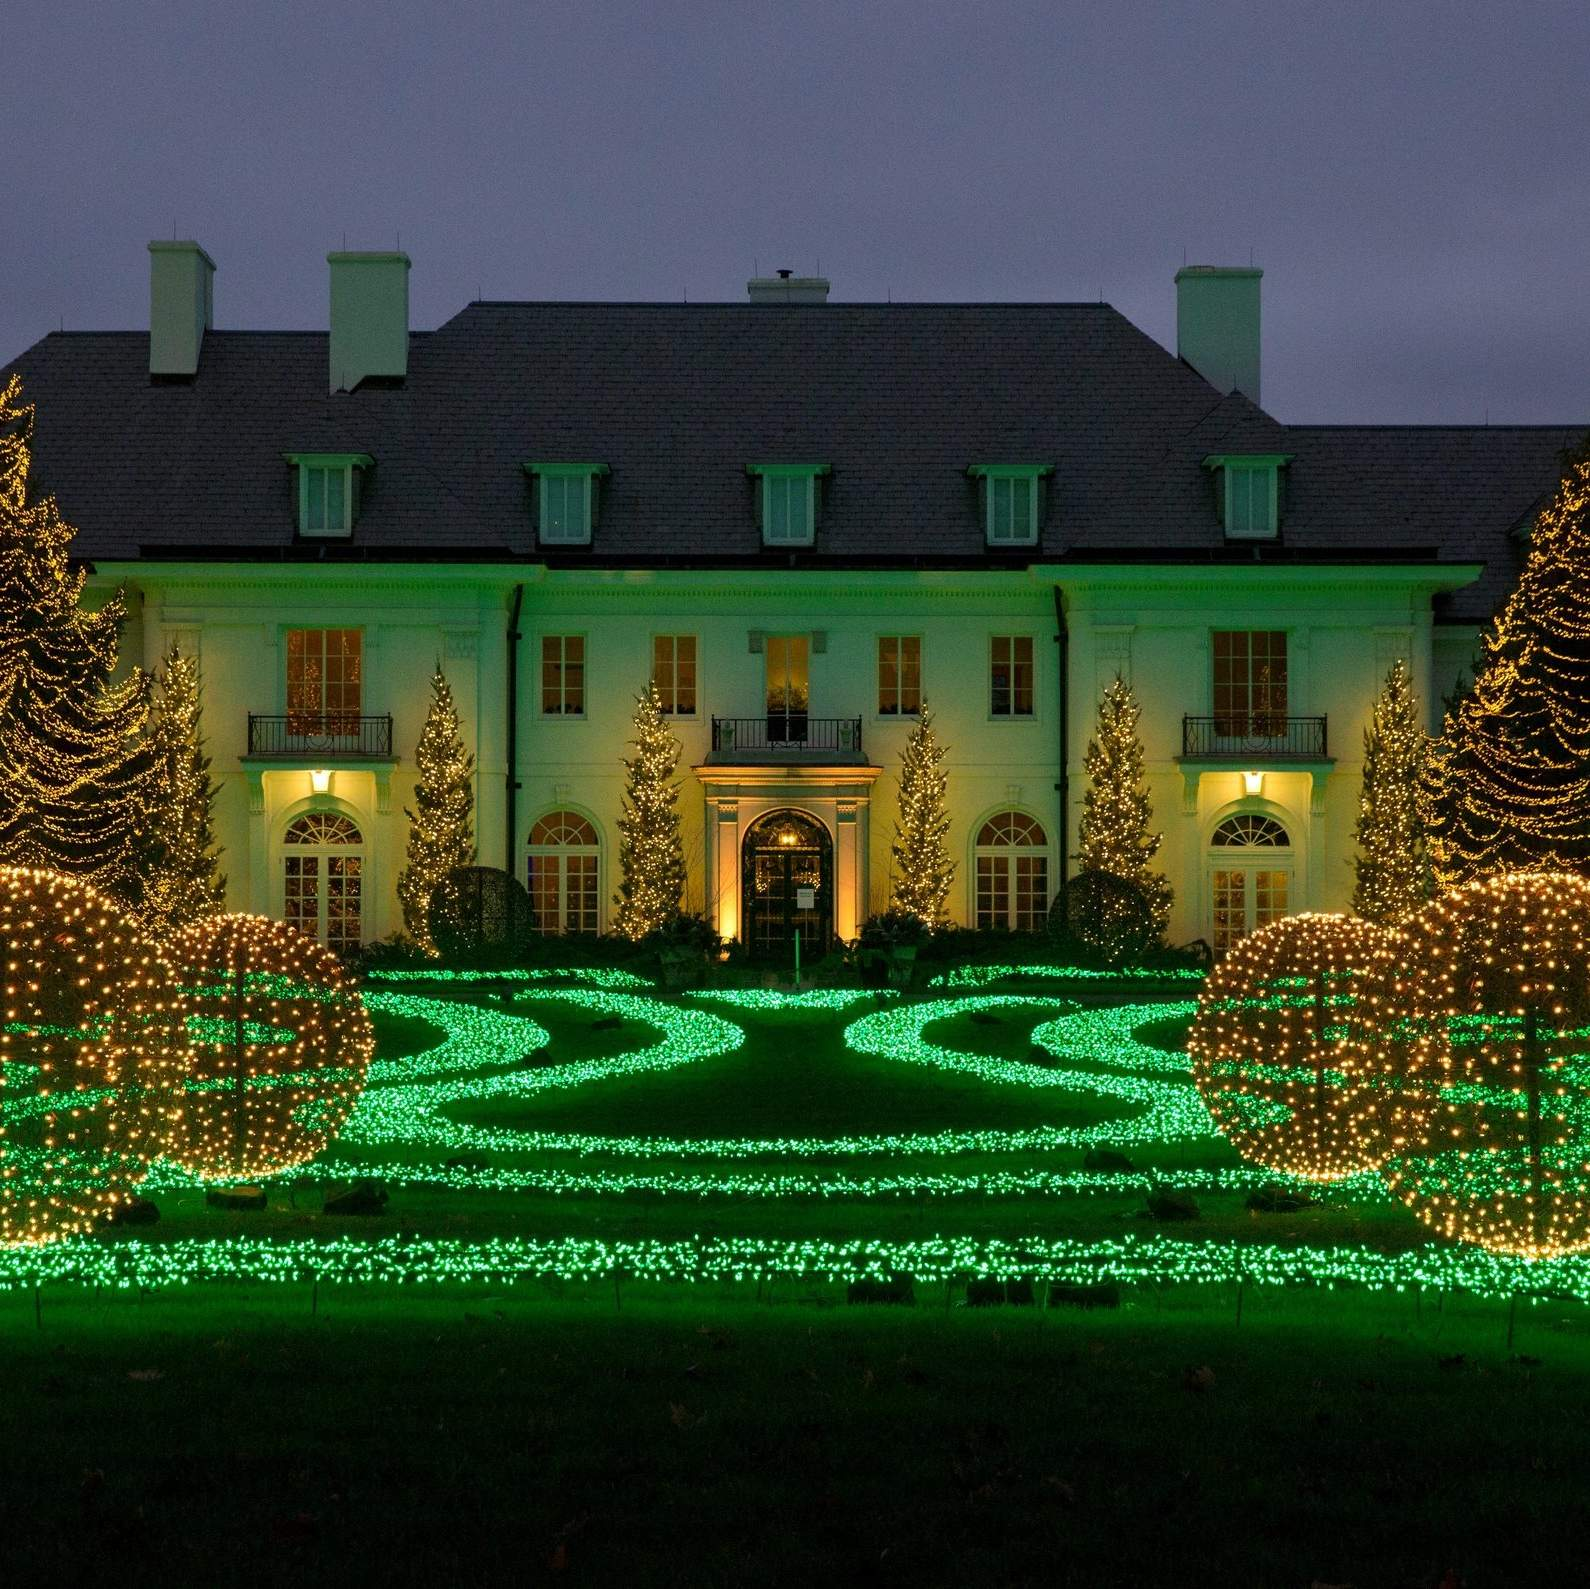 The Lilly House at Newfields is part of the Winterlights holiday light display on the museum's grounds in Indianapolis. The display on the lawn of the home ...